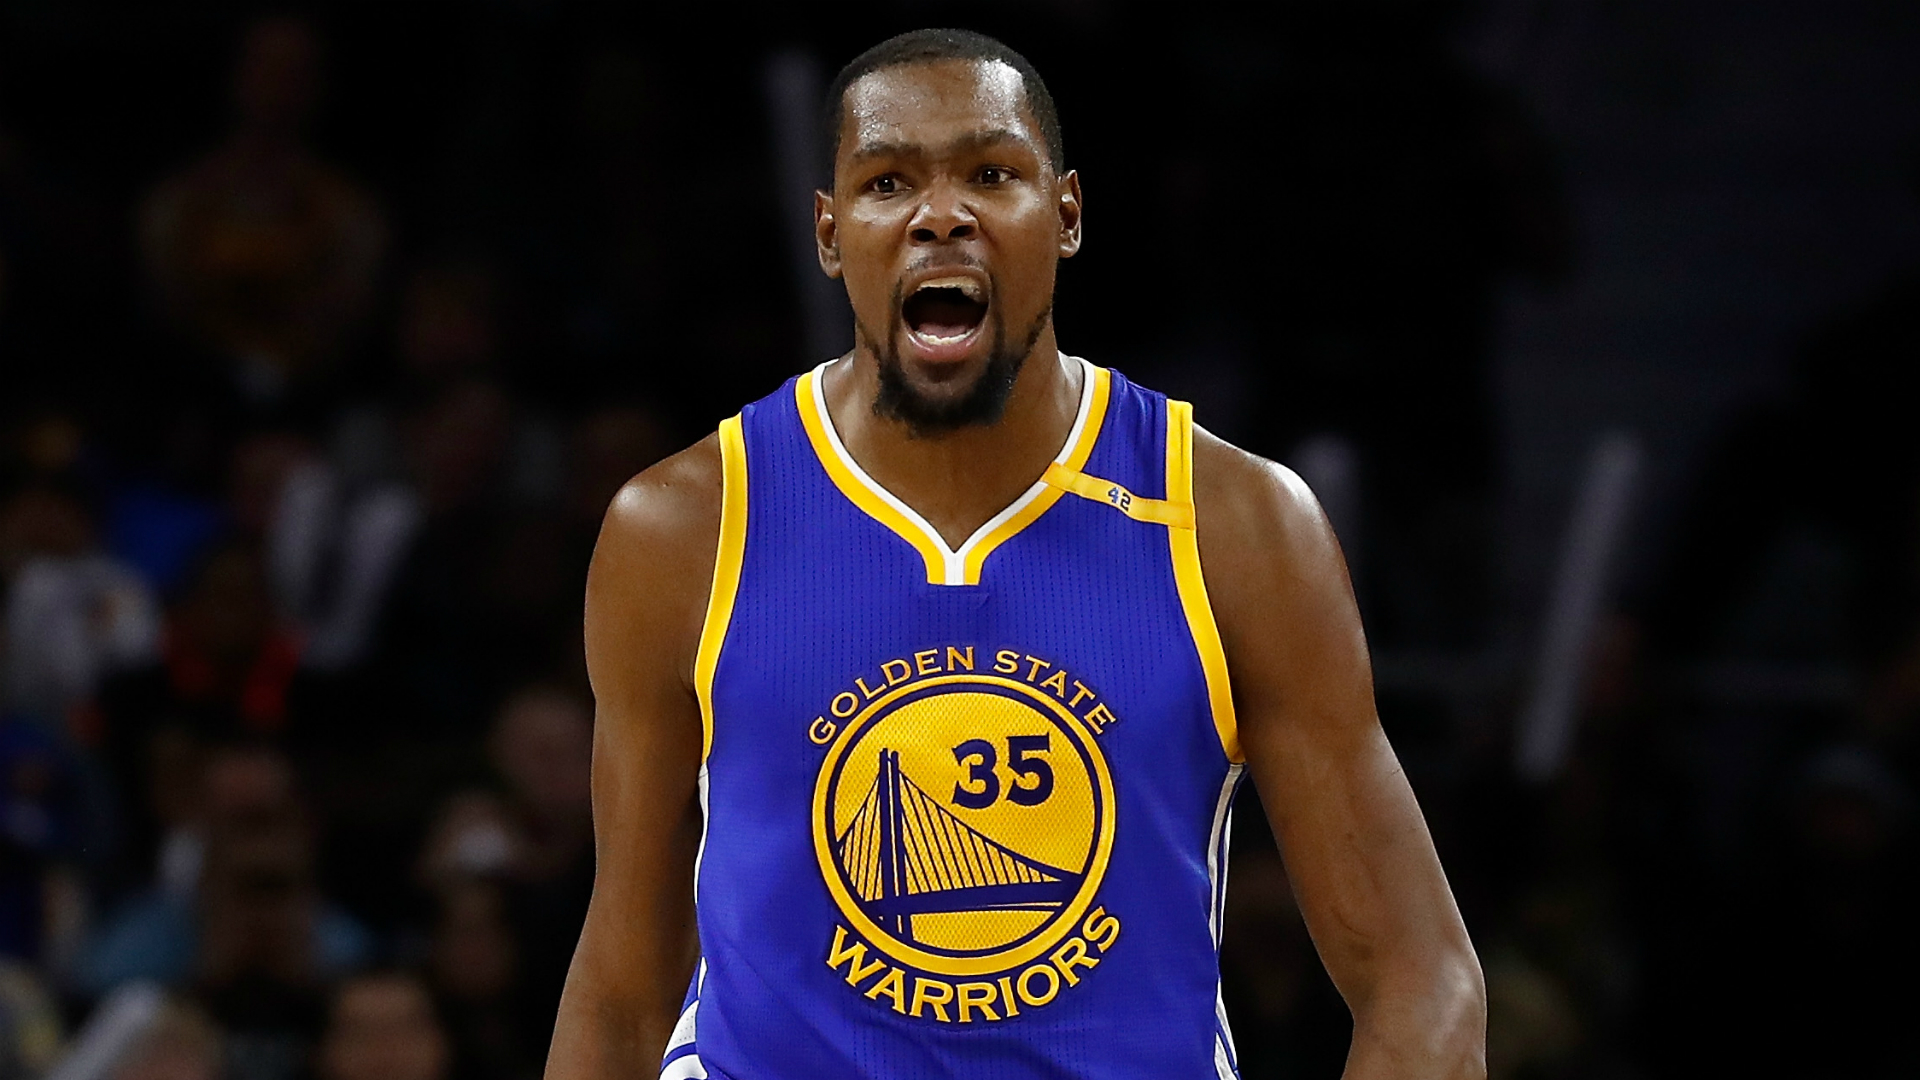 Kevin Durant On Track To Return In Regular Season